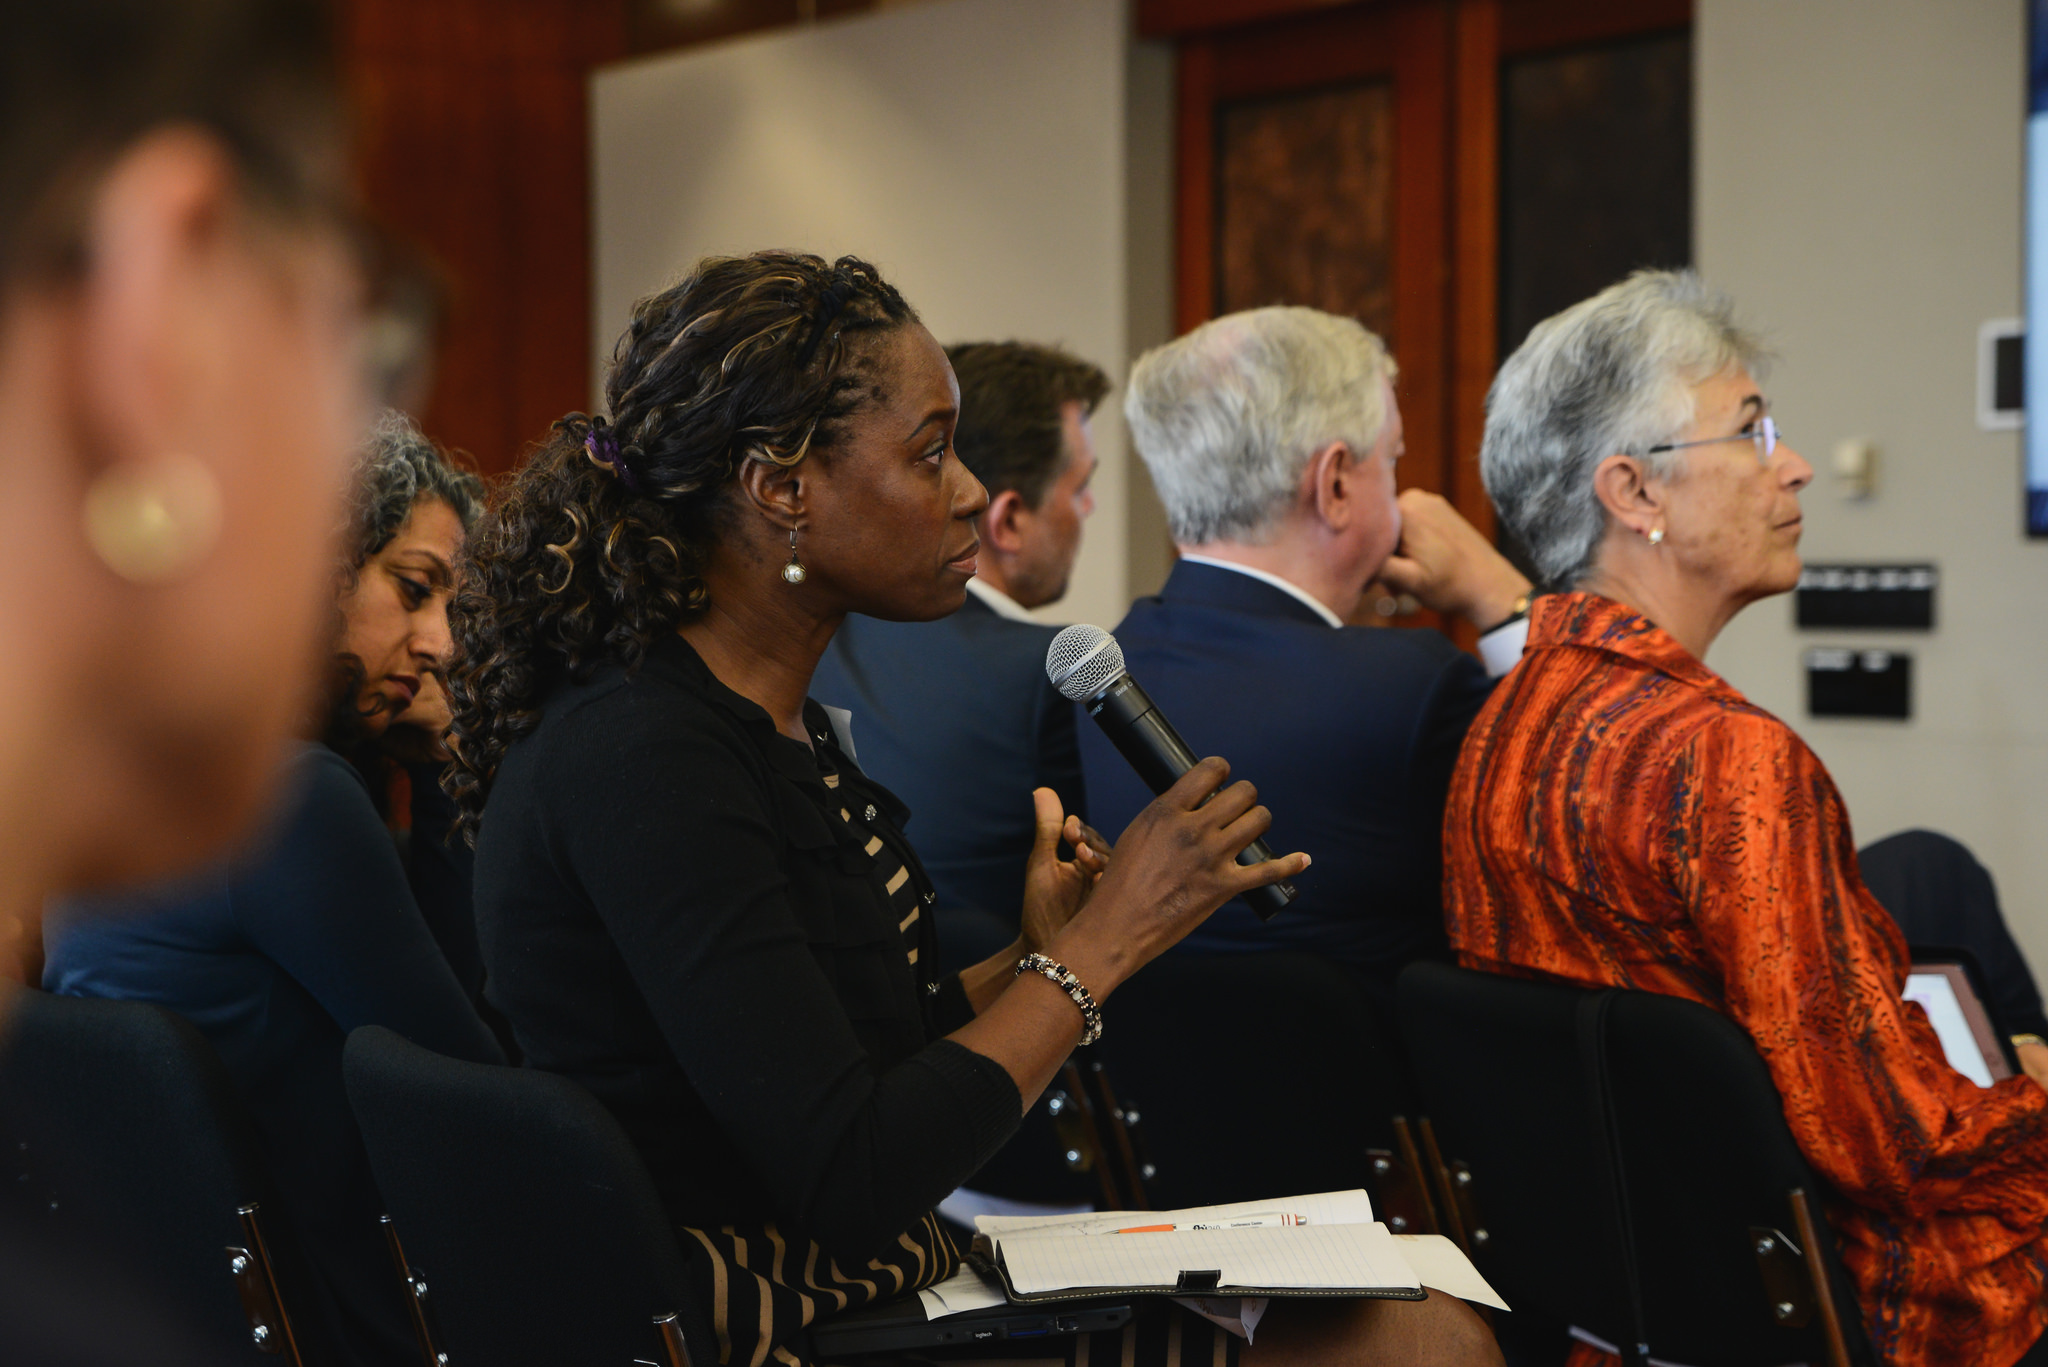 <p>Audience member at food loss and waste event. Flickr/WRI</p>